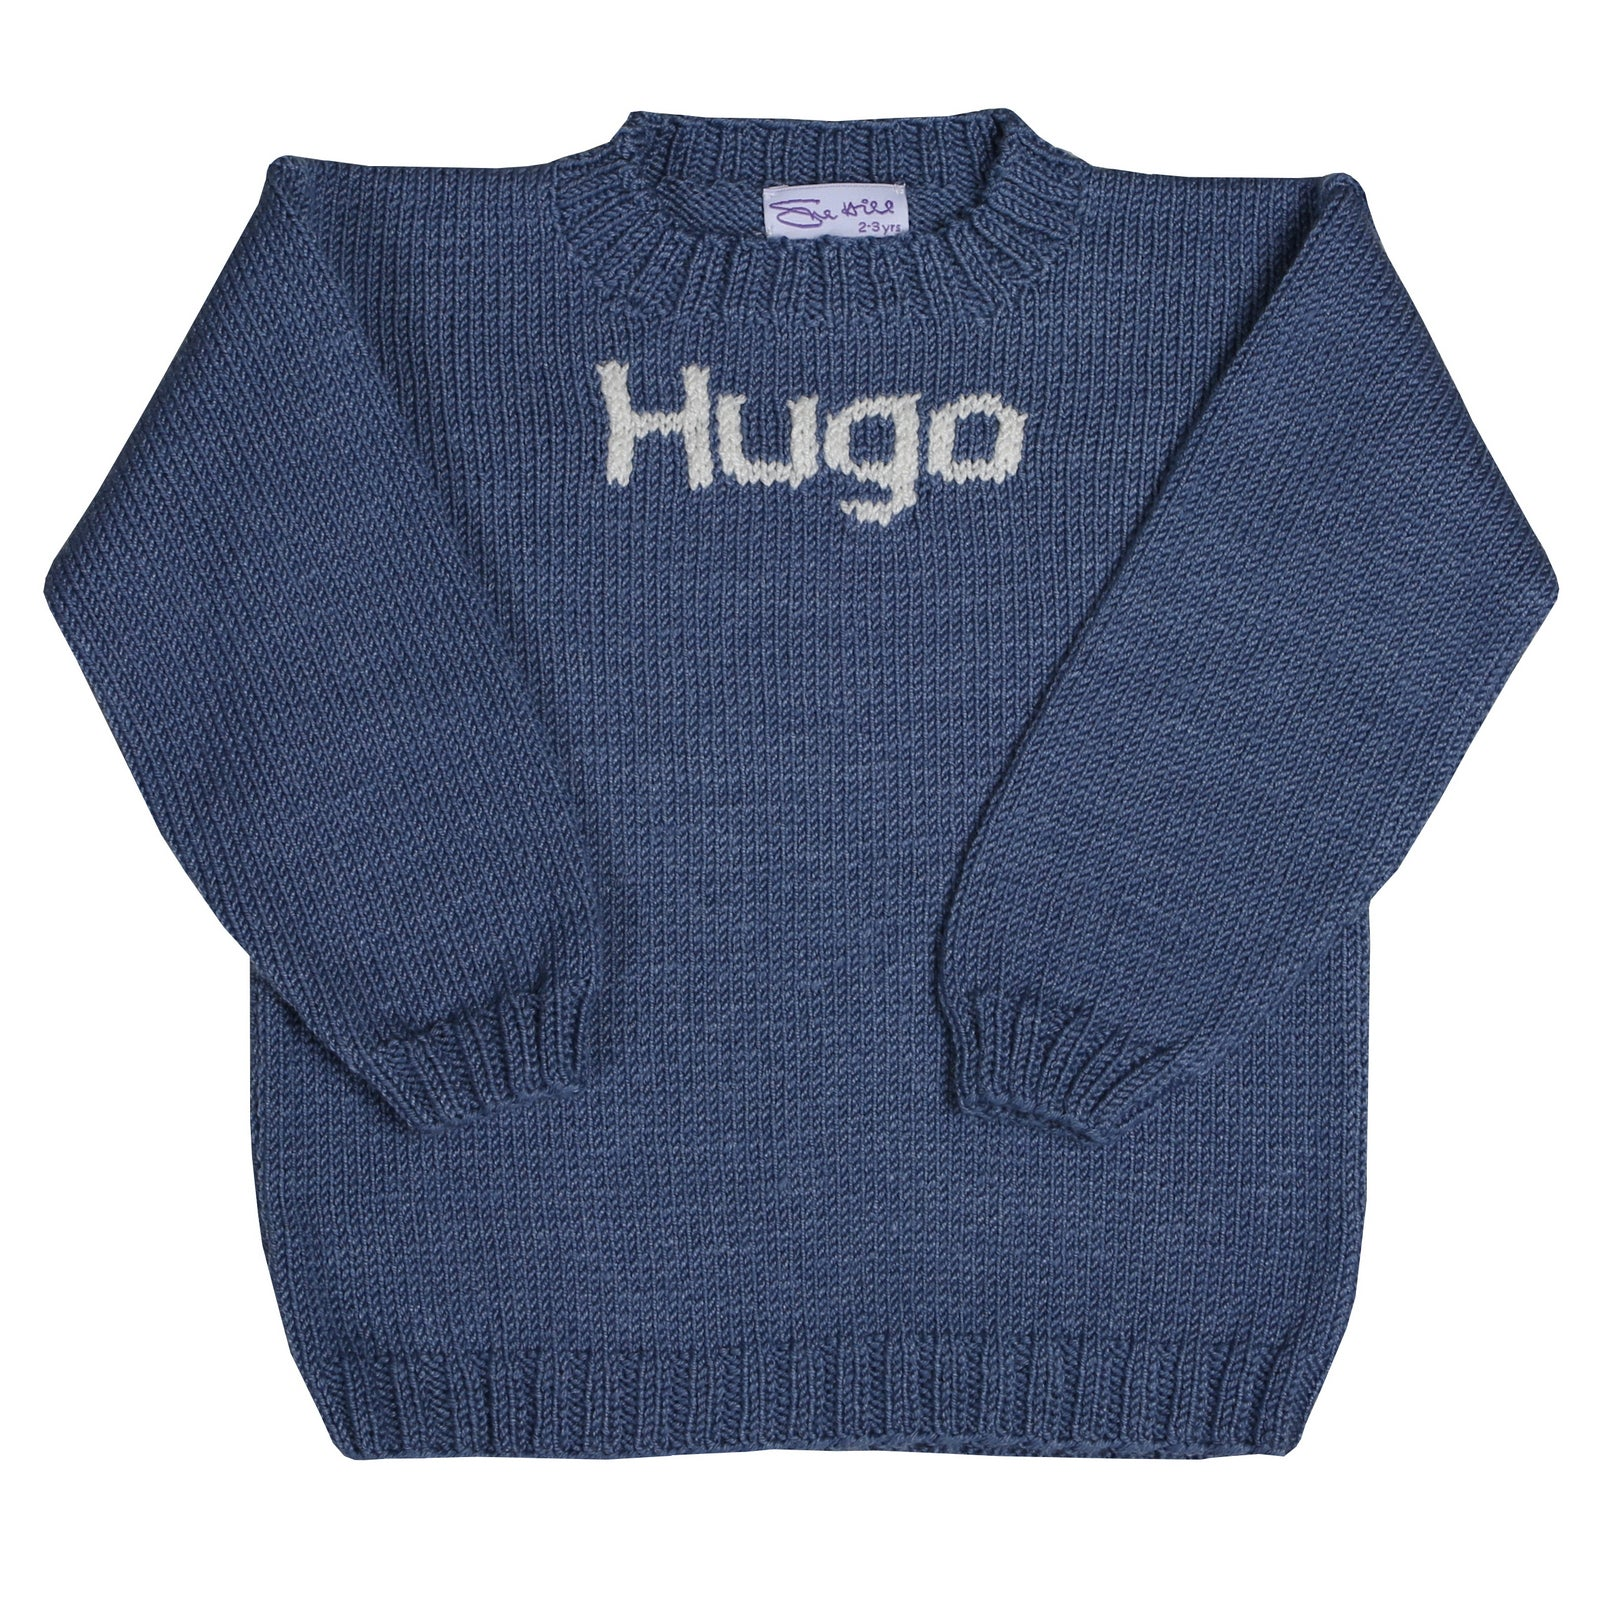 Sue Hill boys personalised sweater hand knitted